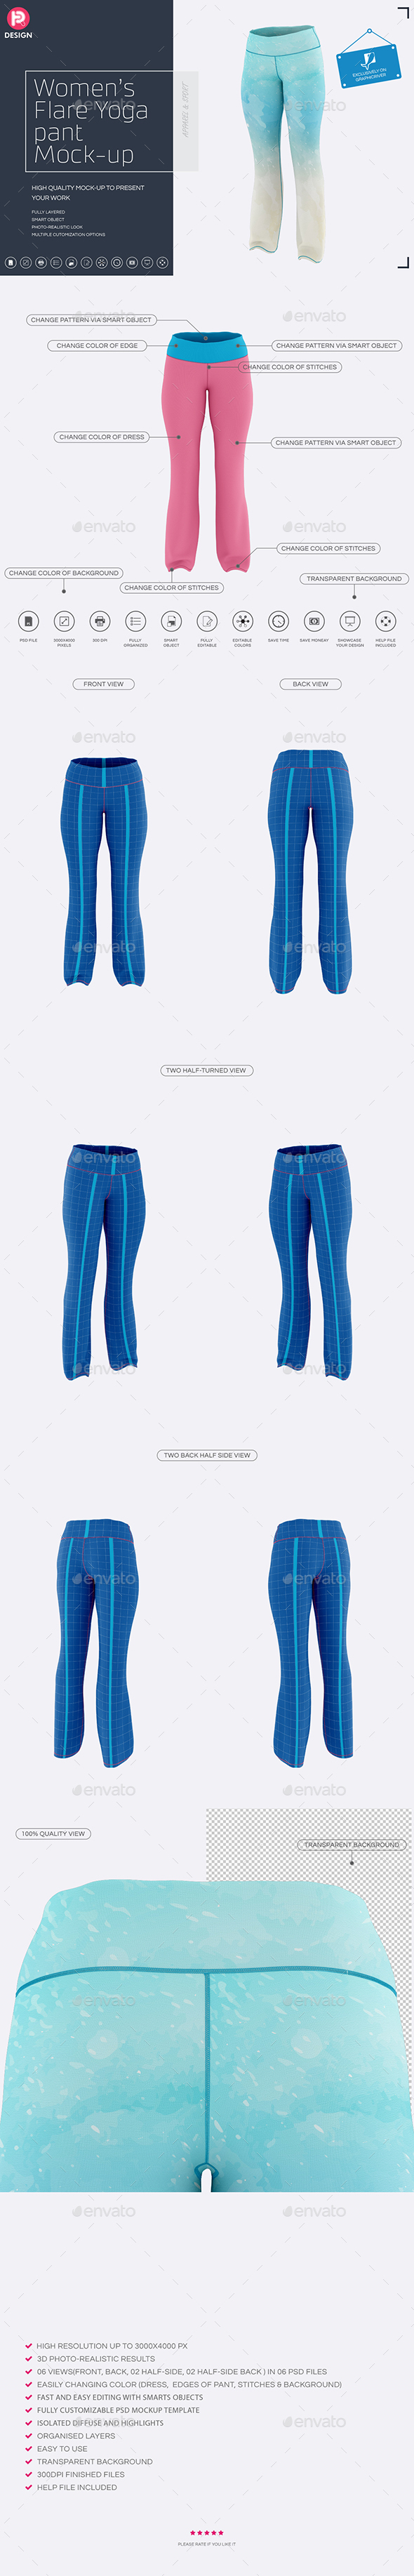 Women's Flare Yoga Pant Mock-up - Miscellaneous Product Mock-Ups